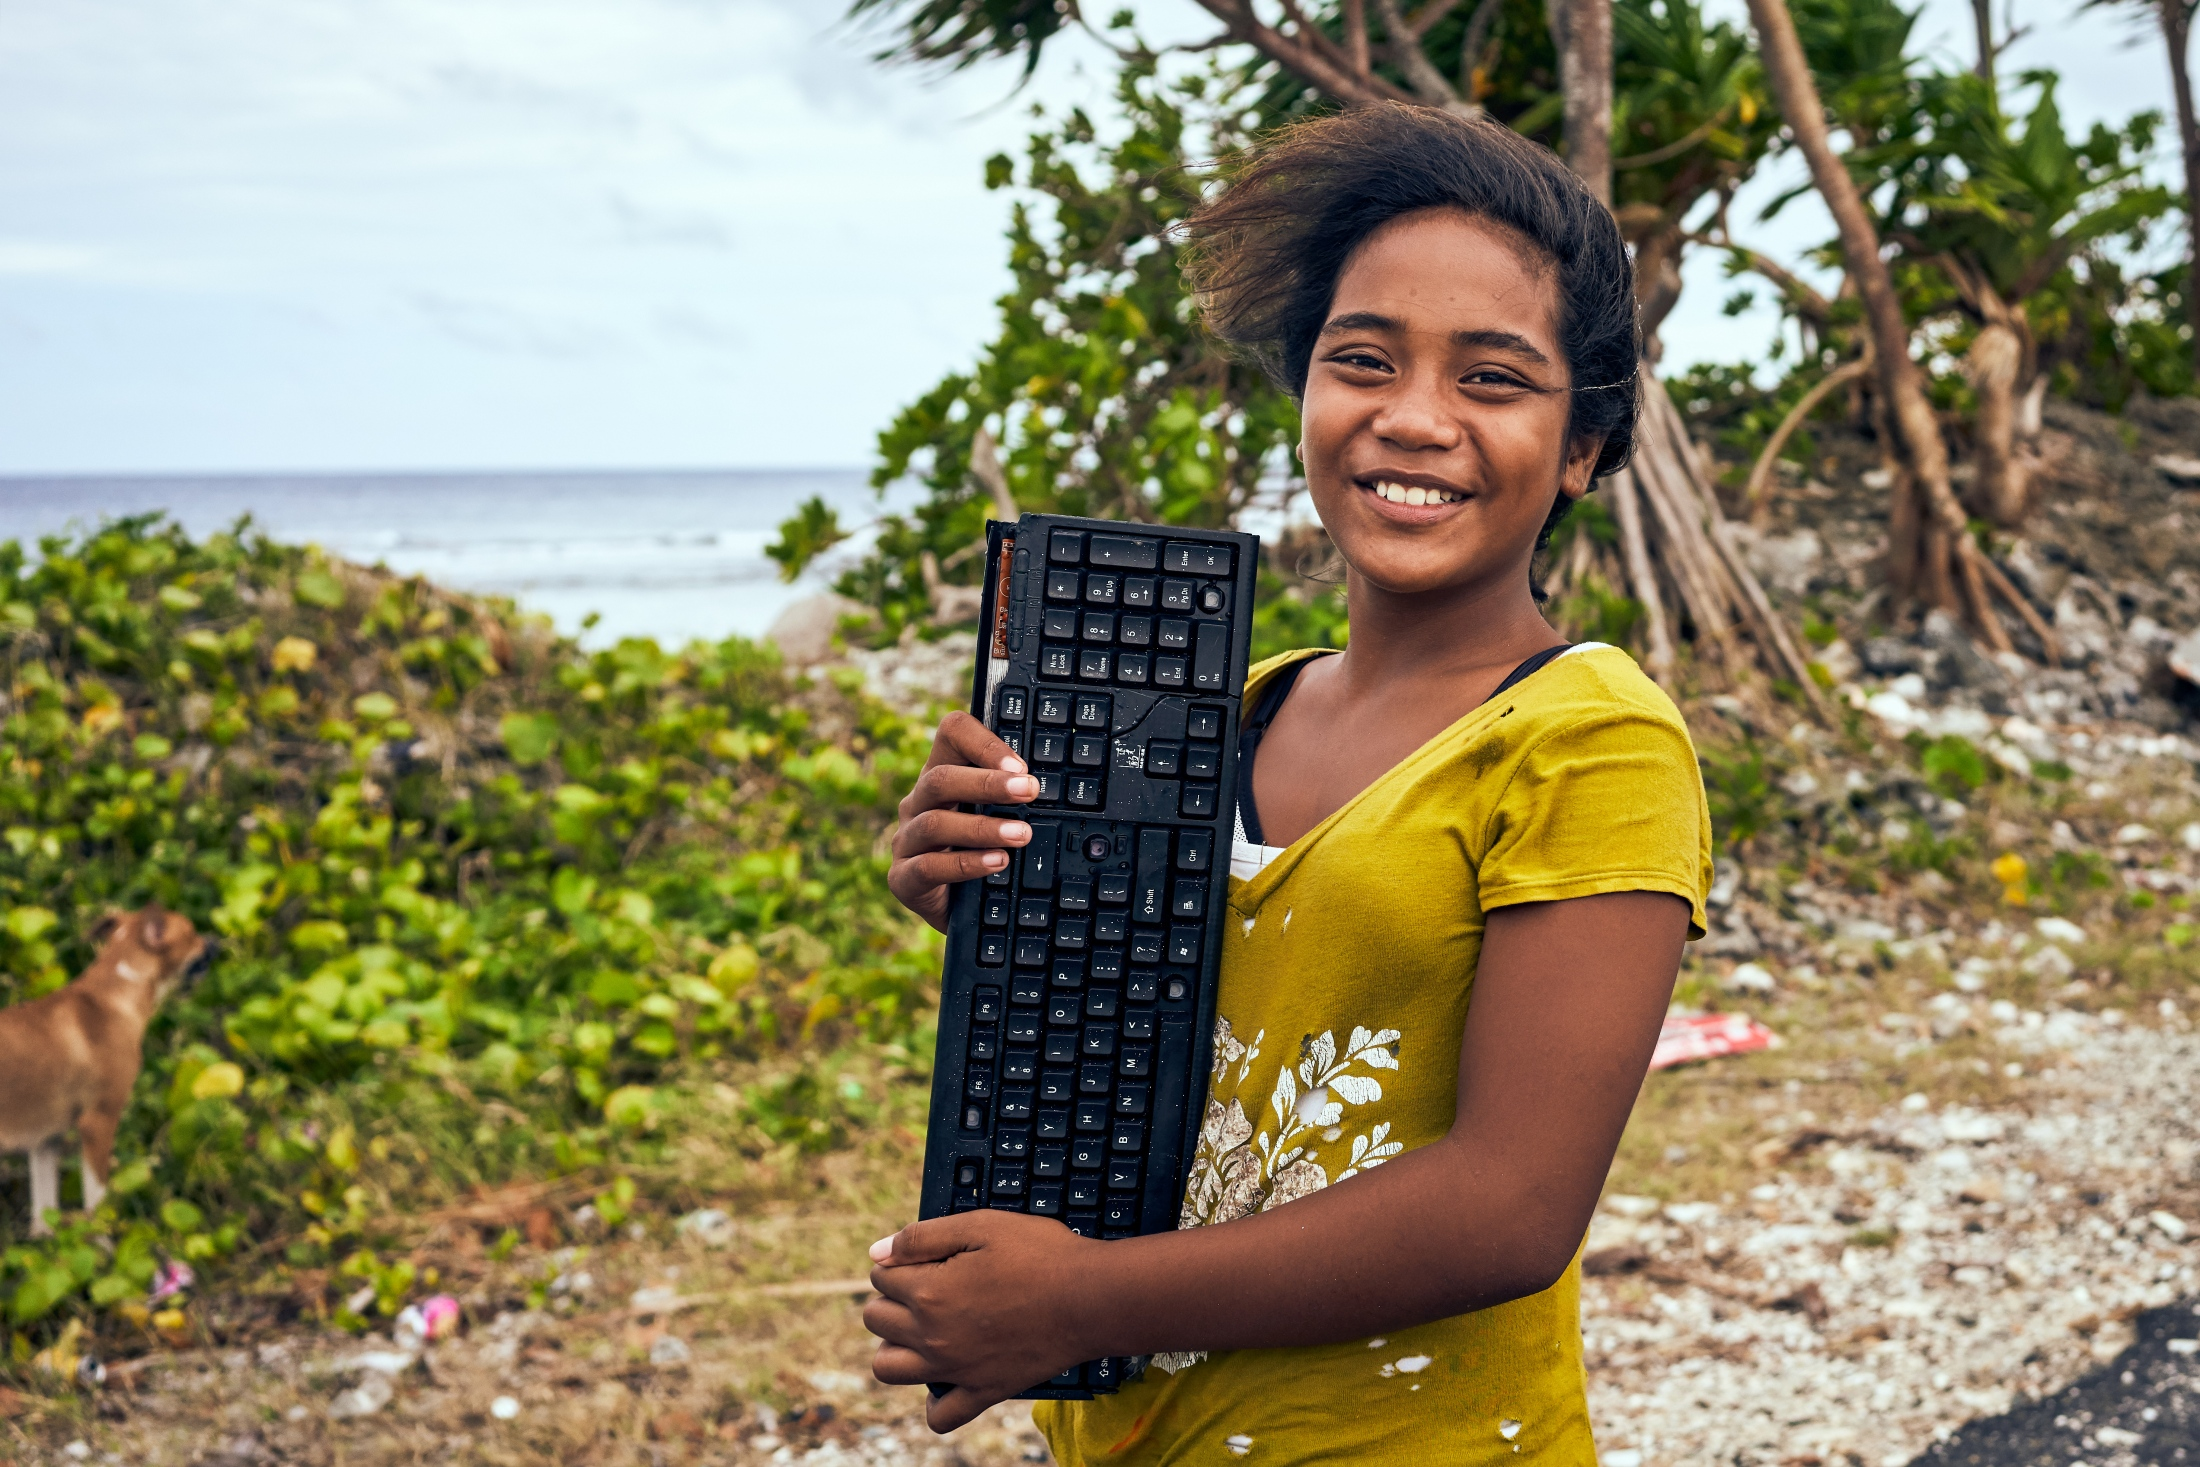 A young Tuvaluan girl poses with a computer keyboard on the narrowest part of the island of Fongafale.  This particular piece of land is approximately 10m wide between the lagoon and the Pacific Ocean, and is often submerged during king tides.